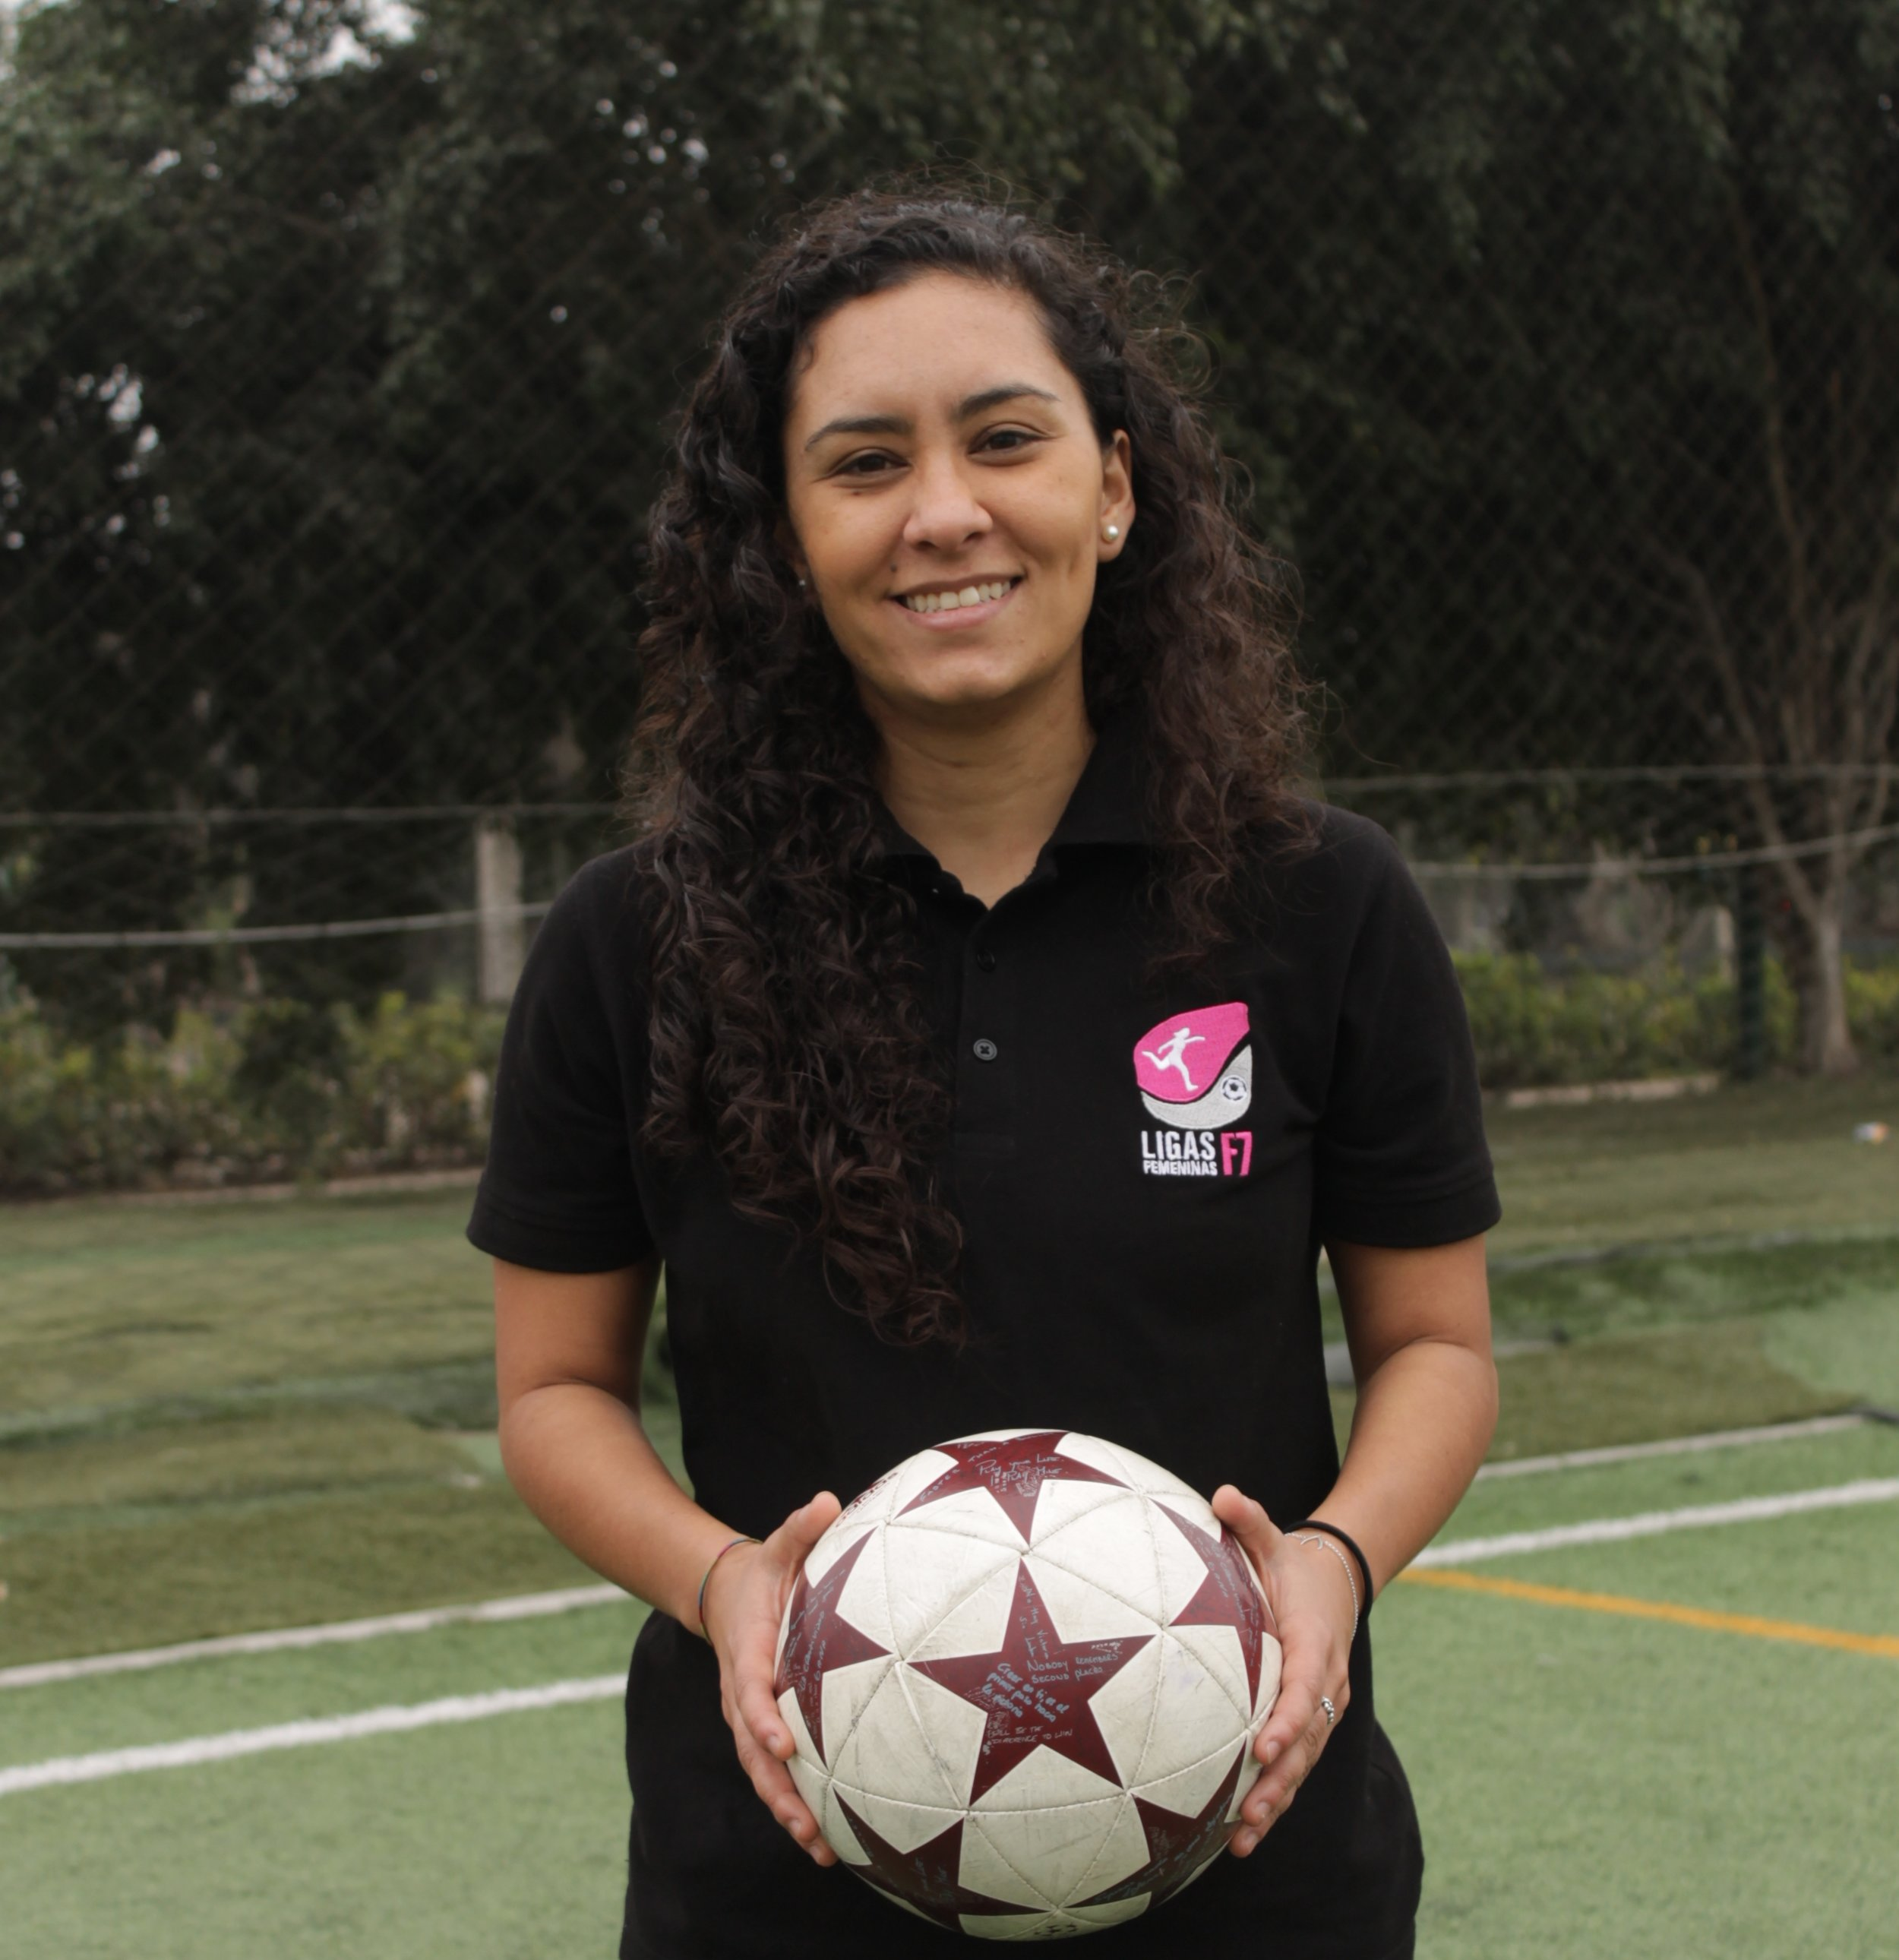 Image description: Thalia standing with soccer ball in her hands on a soccer field dressed in polo with the Ligas Femeninas de Futbol logo.